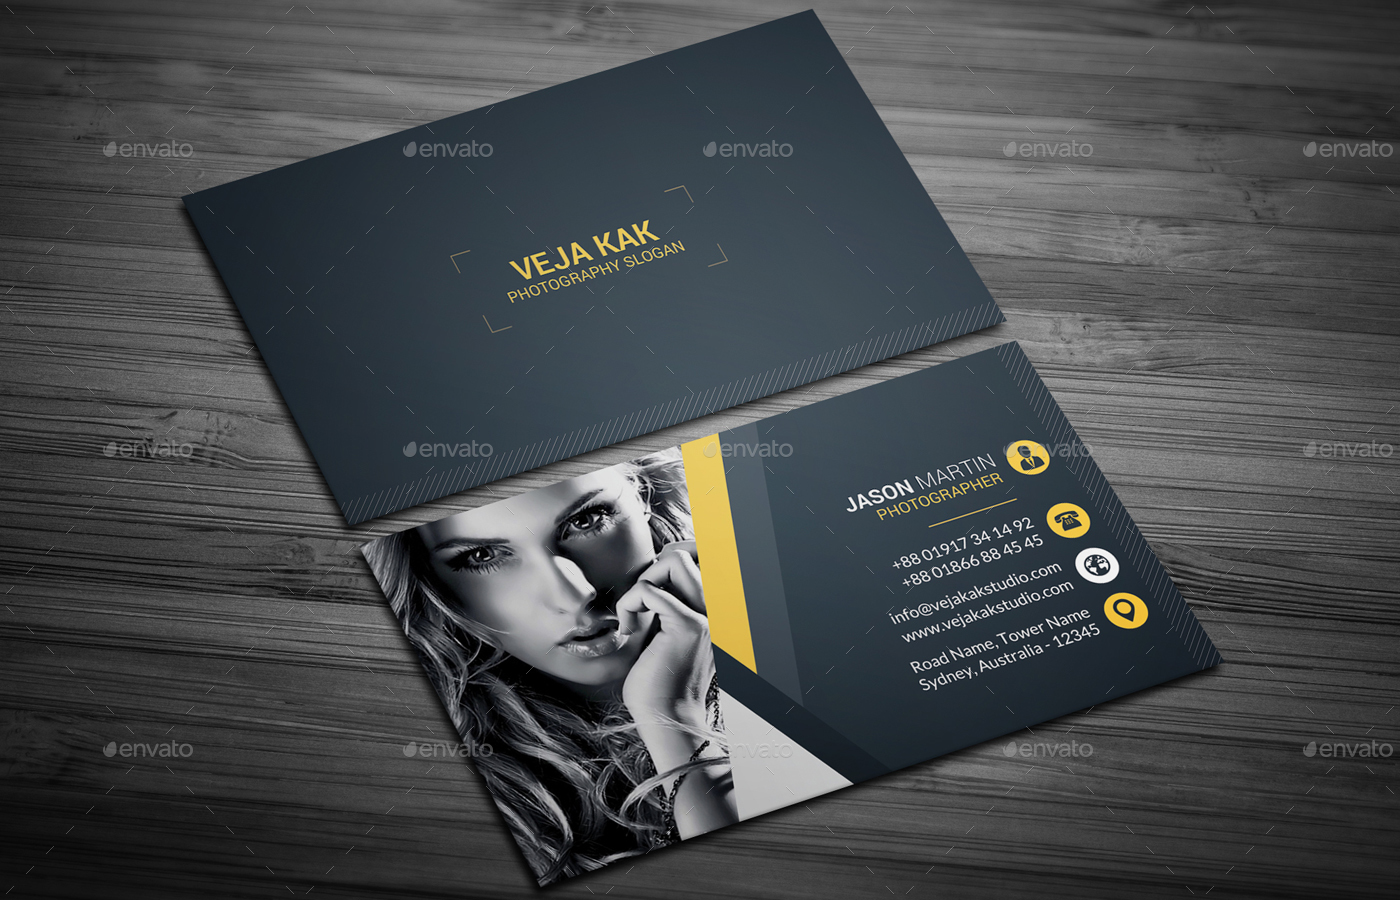 Photography Business Cards Australia Images - Card Design And Card ...